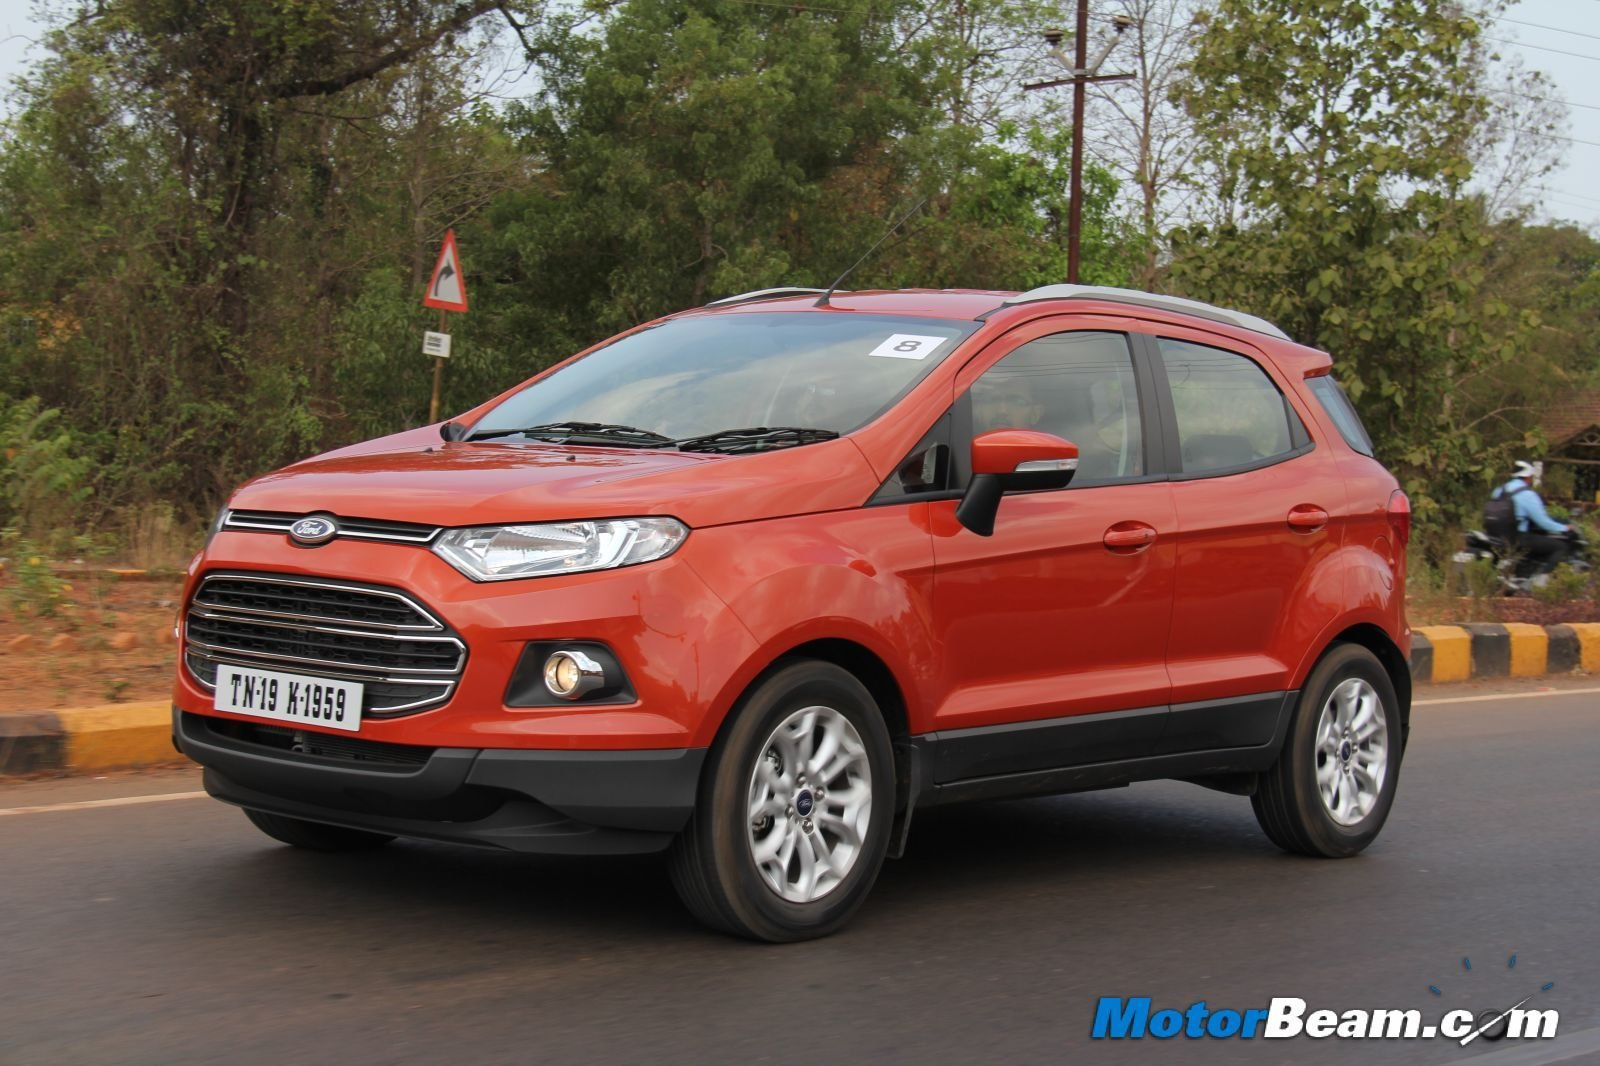 Latest Ford Shocks Renault With Ecosport Price In India Free Download